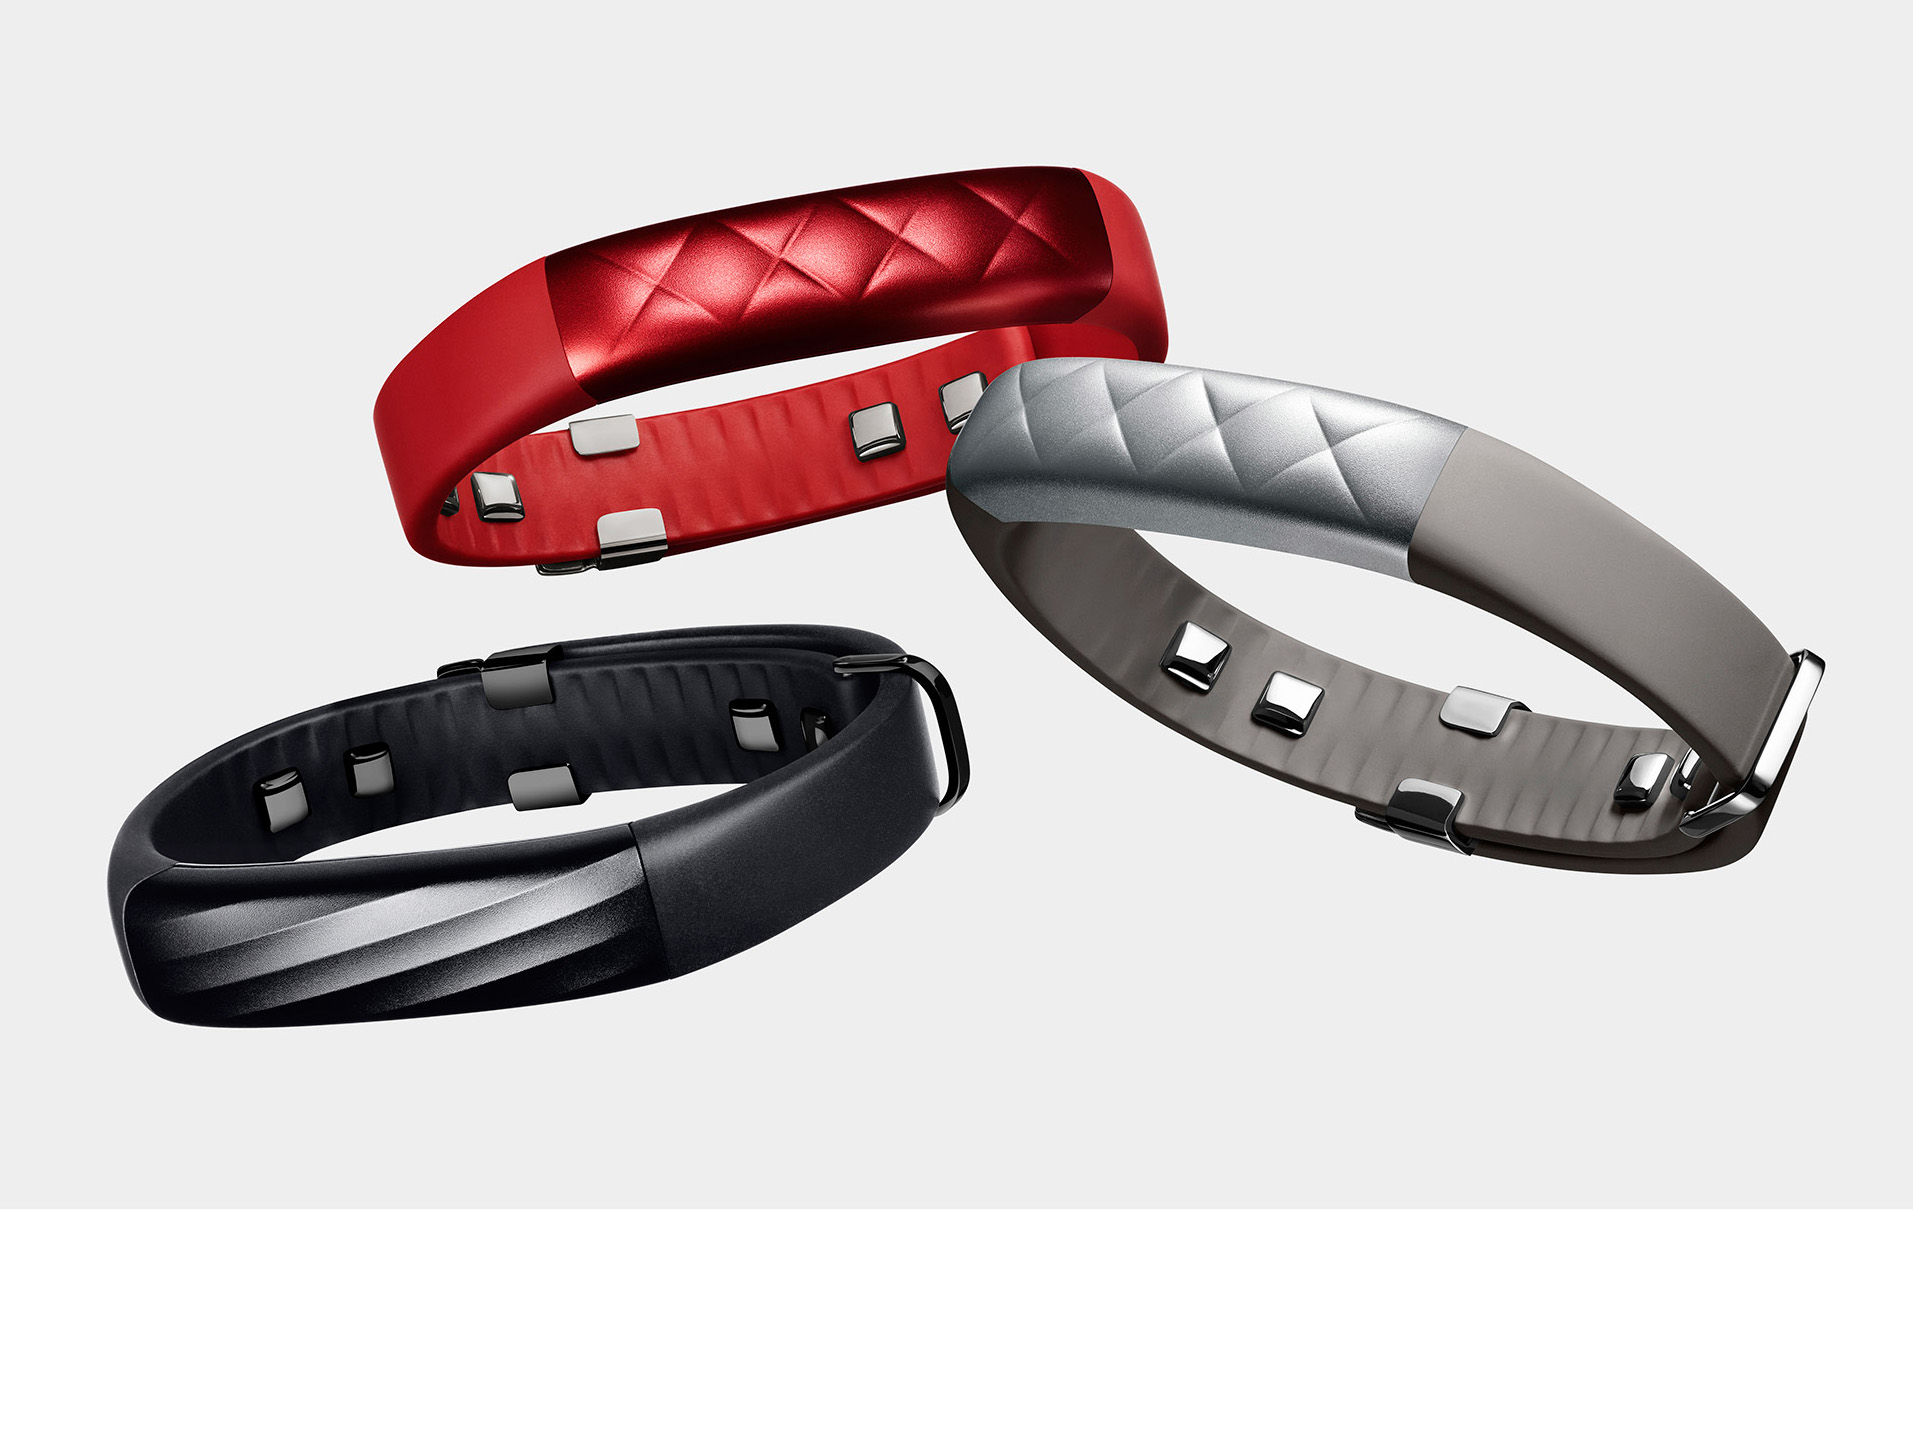 Jawbone promo code is waiting for you at Chameleonjohn website. This price discounting code is ready to use! All you need to do is purchase anything you want at Jawbone without worrying about the price. We always provide you with the best online consumer electronics deals such as Jawbone price reducing coupons.